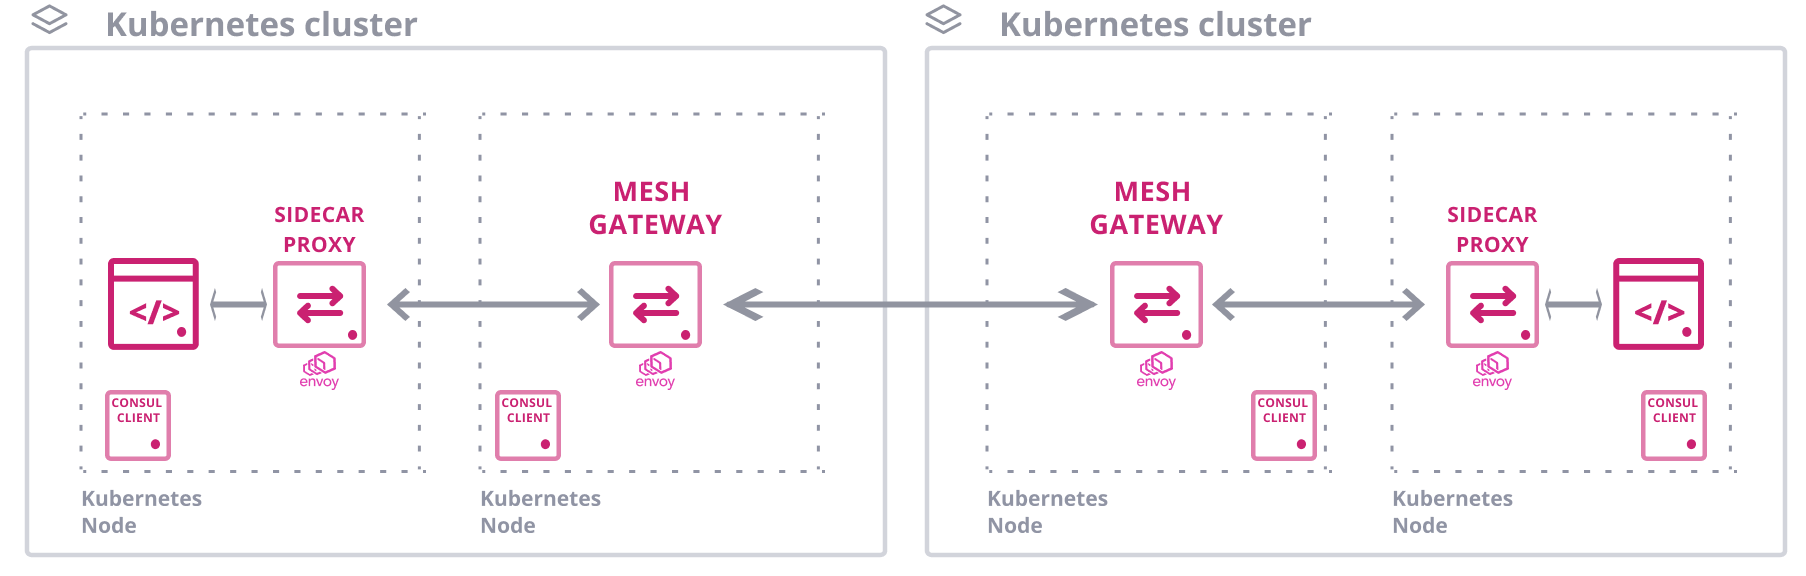 Secure Service Mesh Communication Across Kubernetes Clusters (source: HashiCorp Learn)